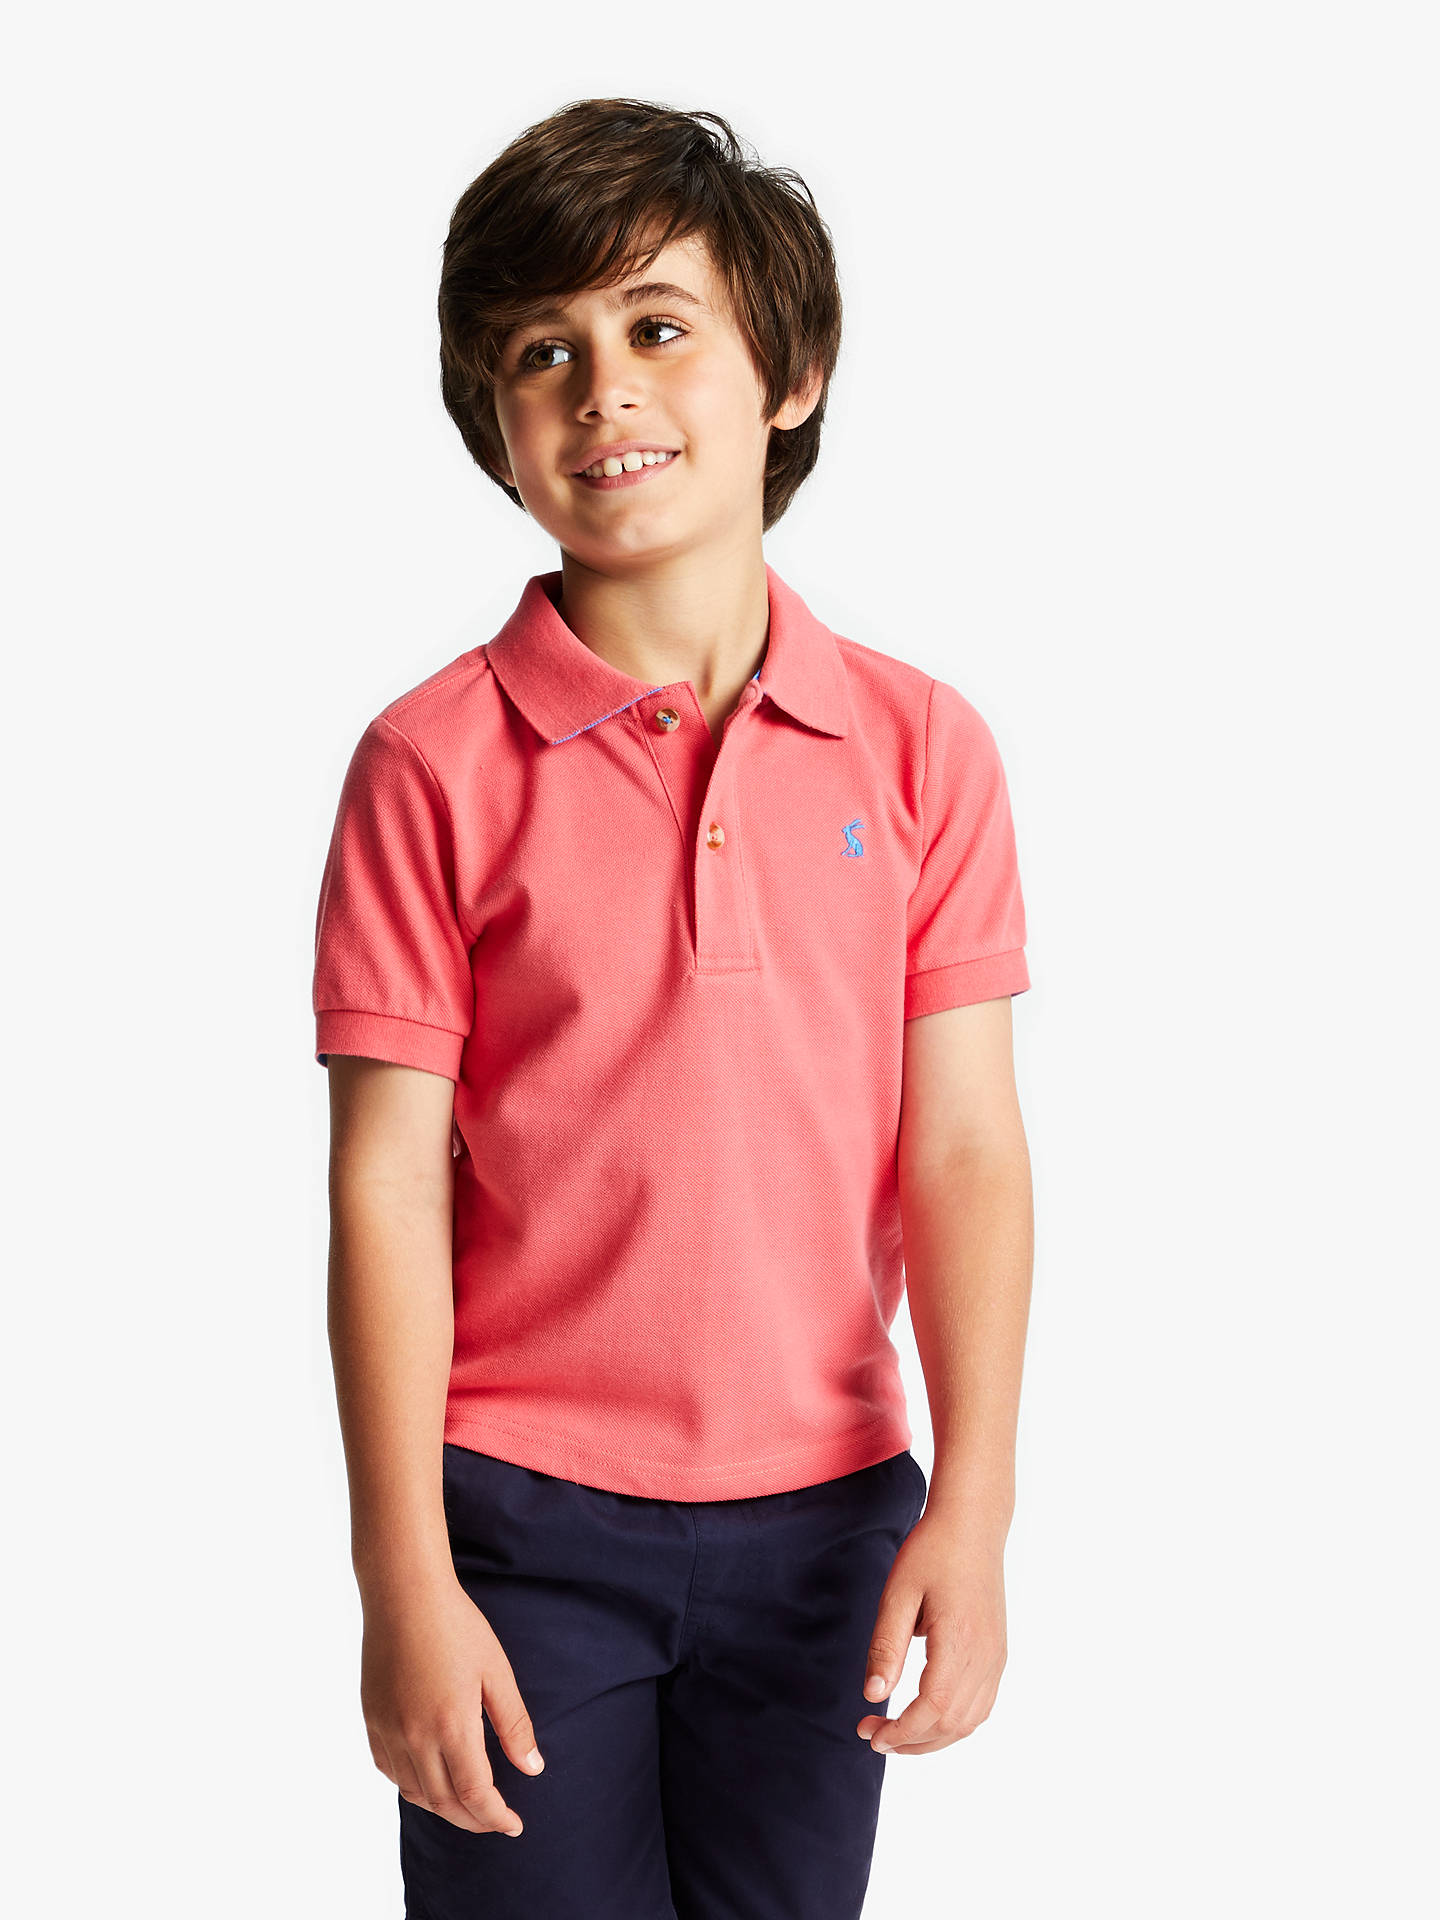 90dfd01c1 Buy Little Joule Boys' Polo Shirt, Pink, 3 years Online at johnlewis.